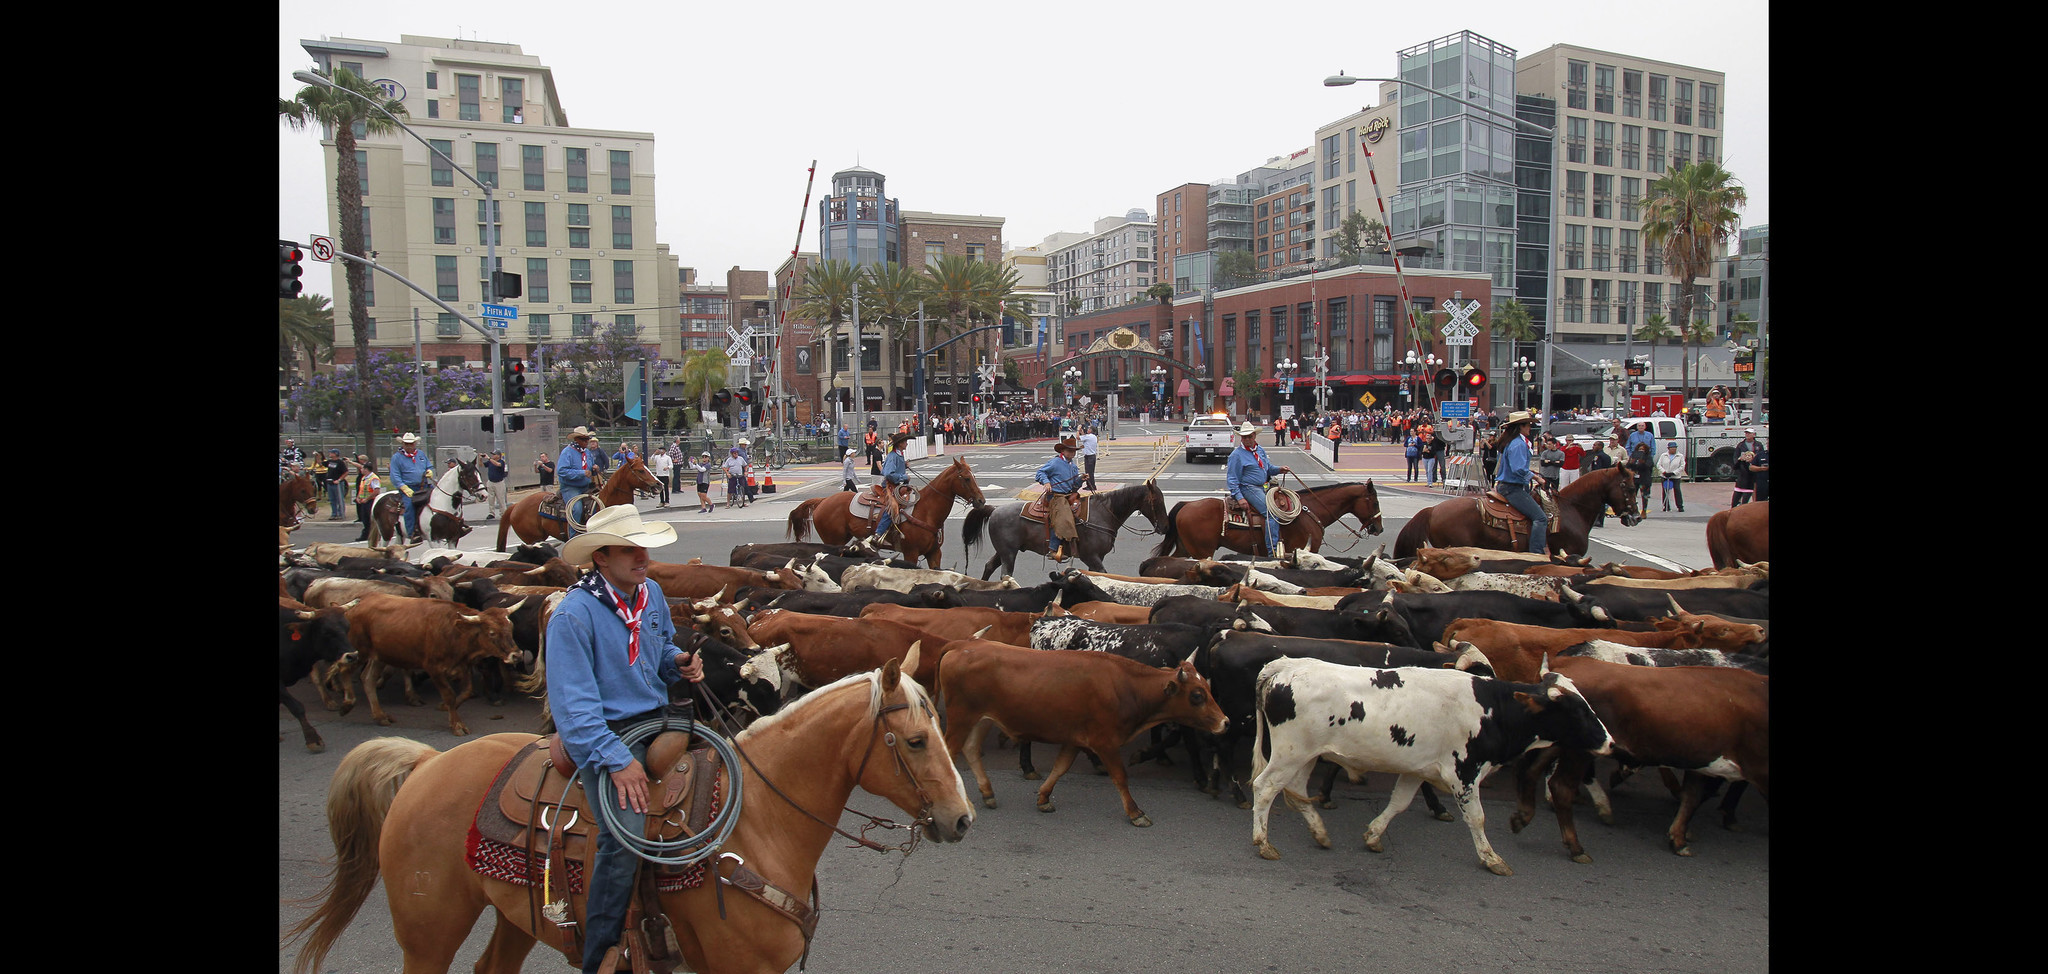 200 cows take over downtown san diego streets in historic cattle